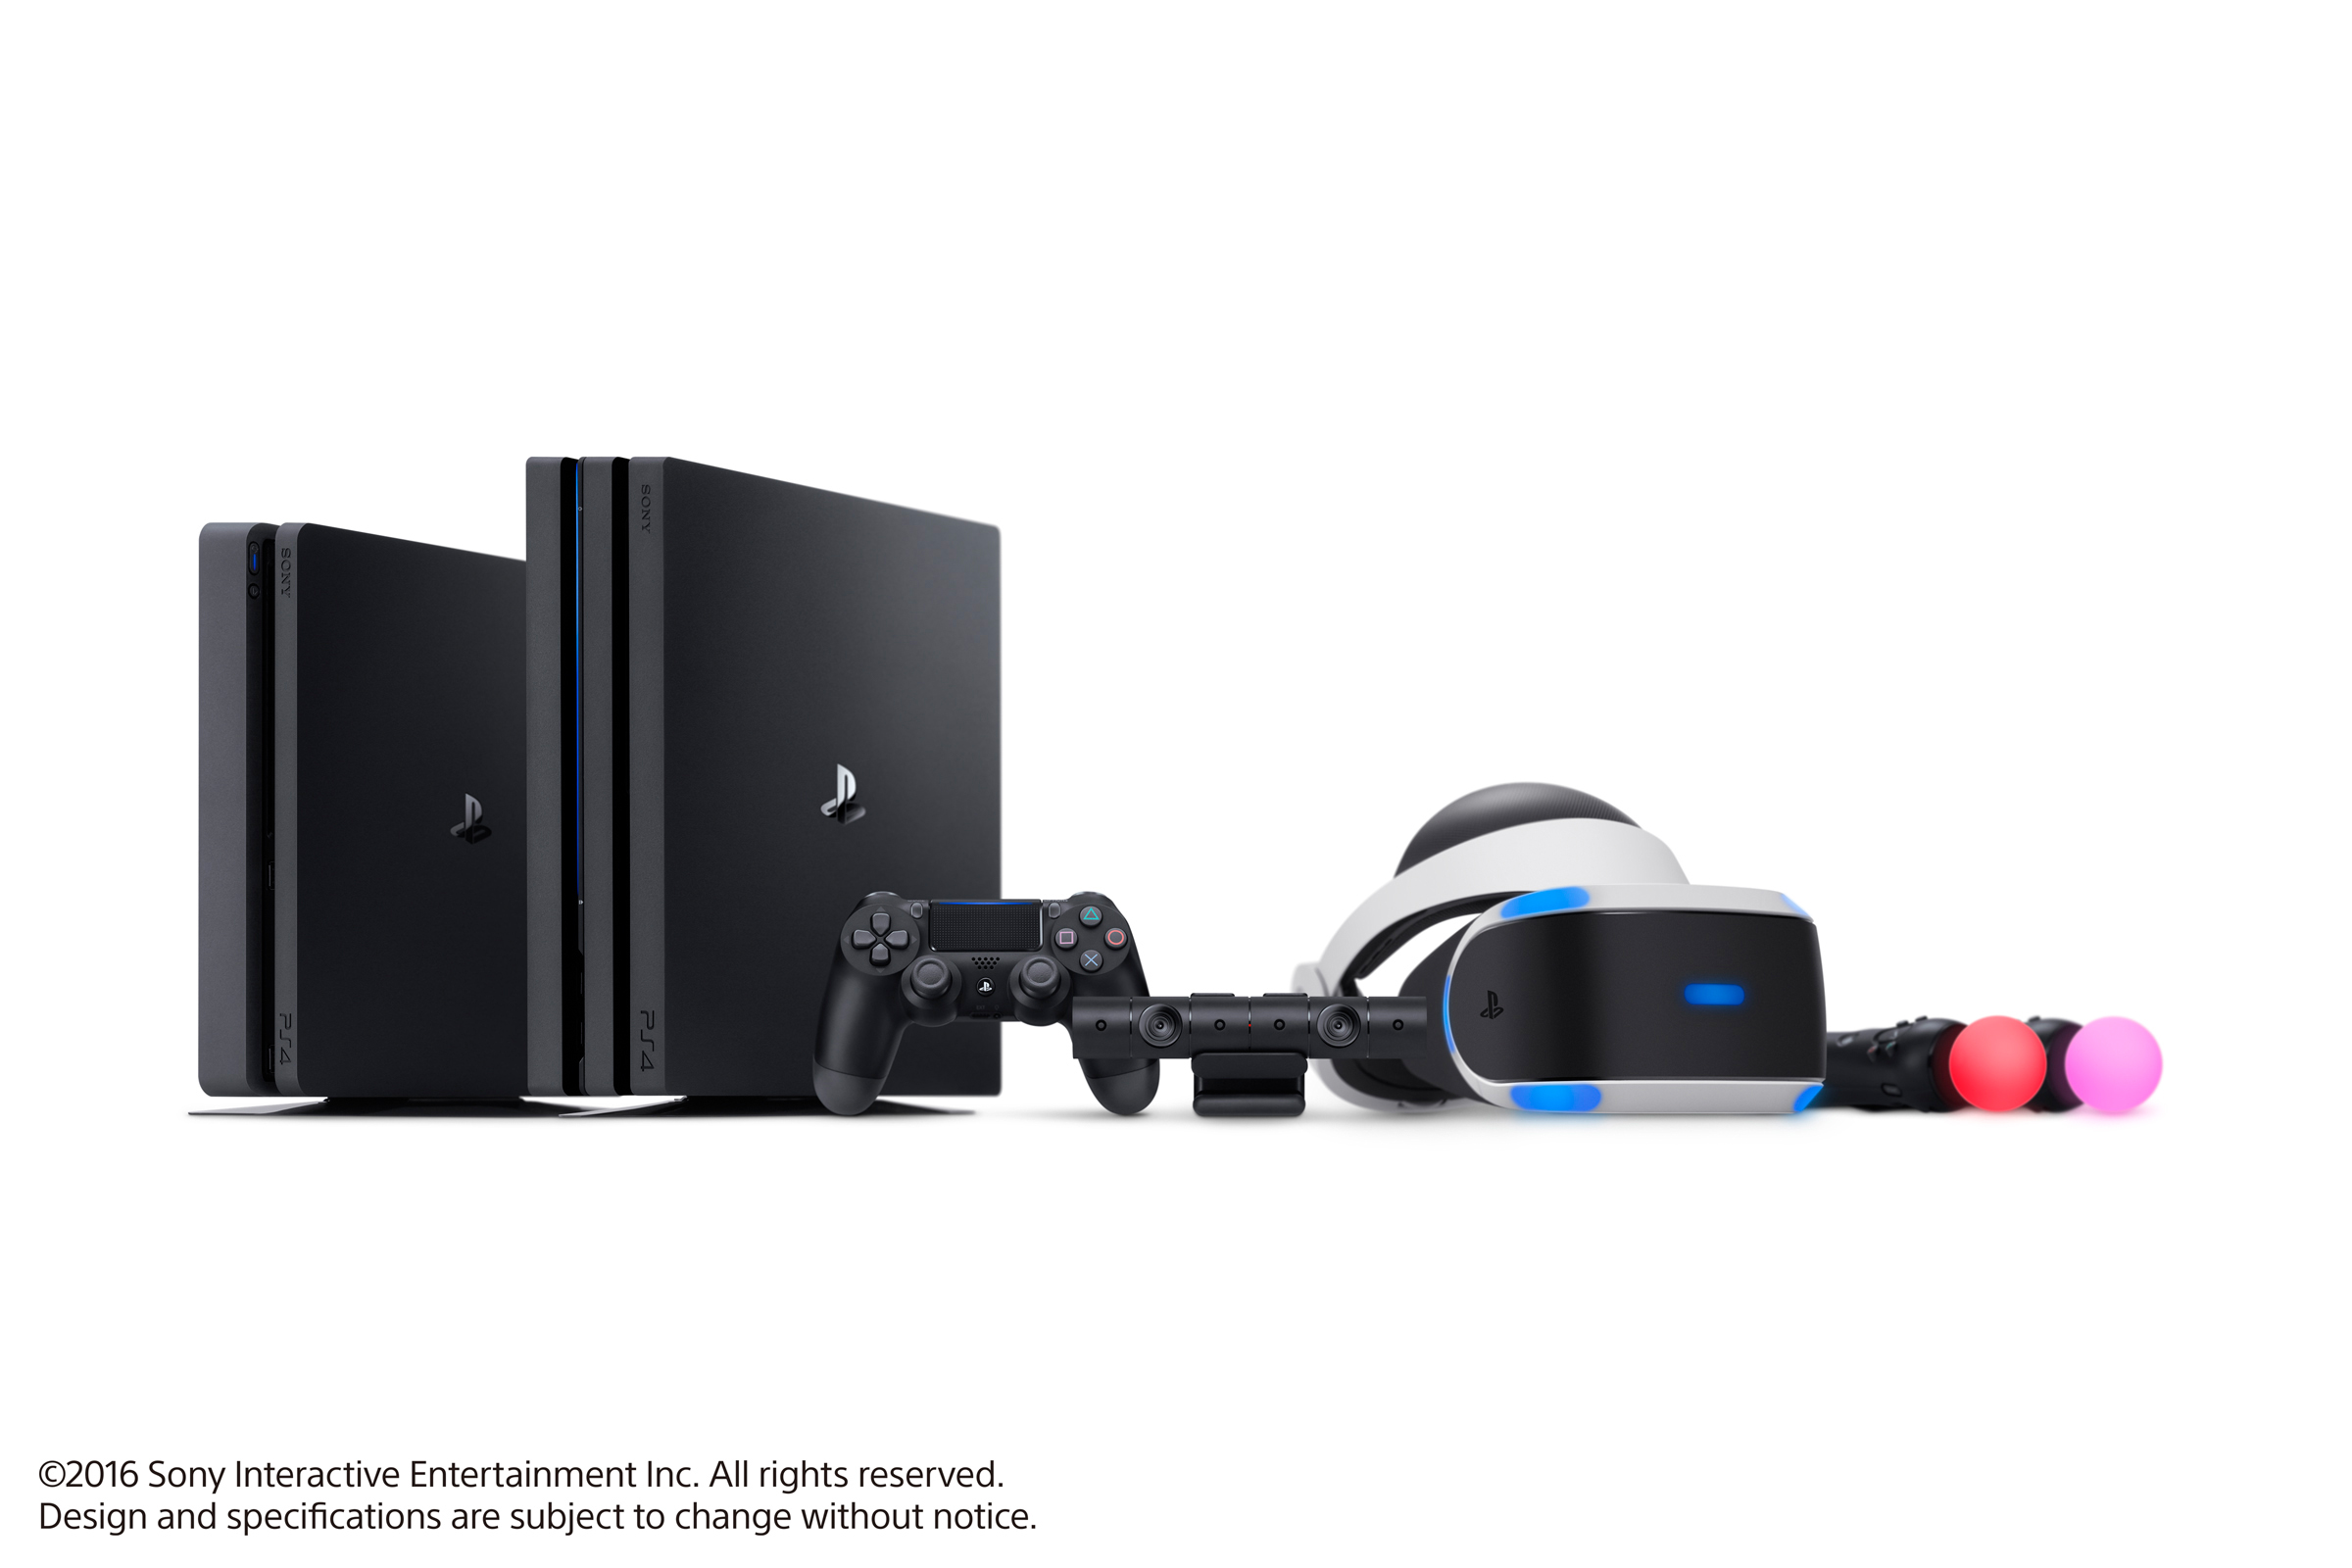 playstation 4 family photo feed4gamers